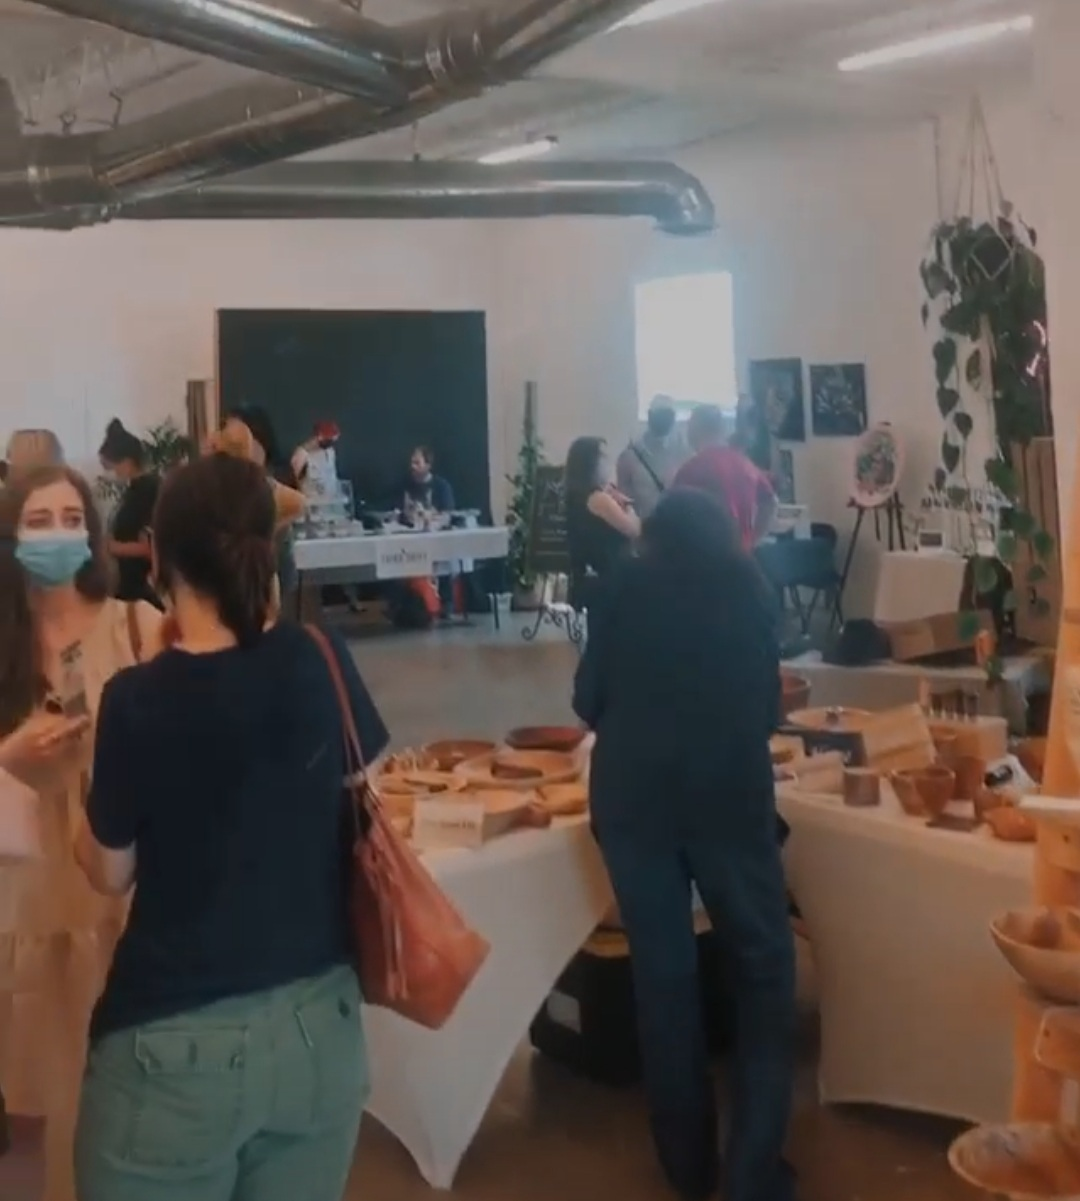 Holiday Markets coming up in Kendall Whittier